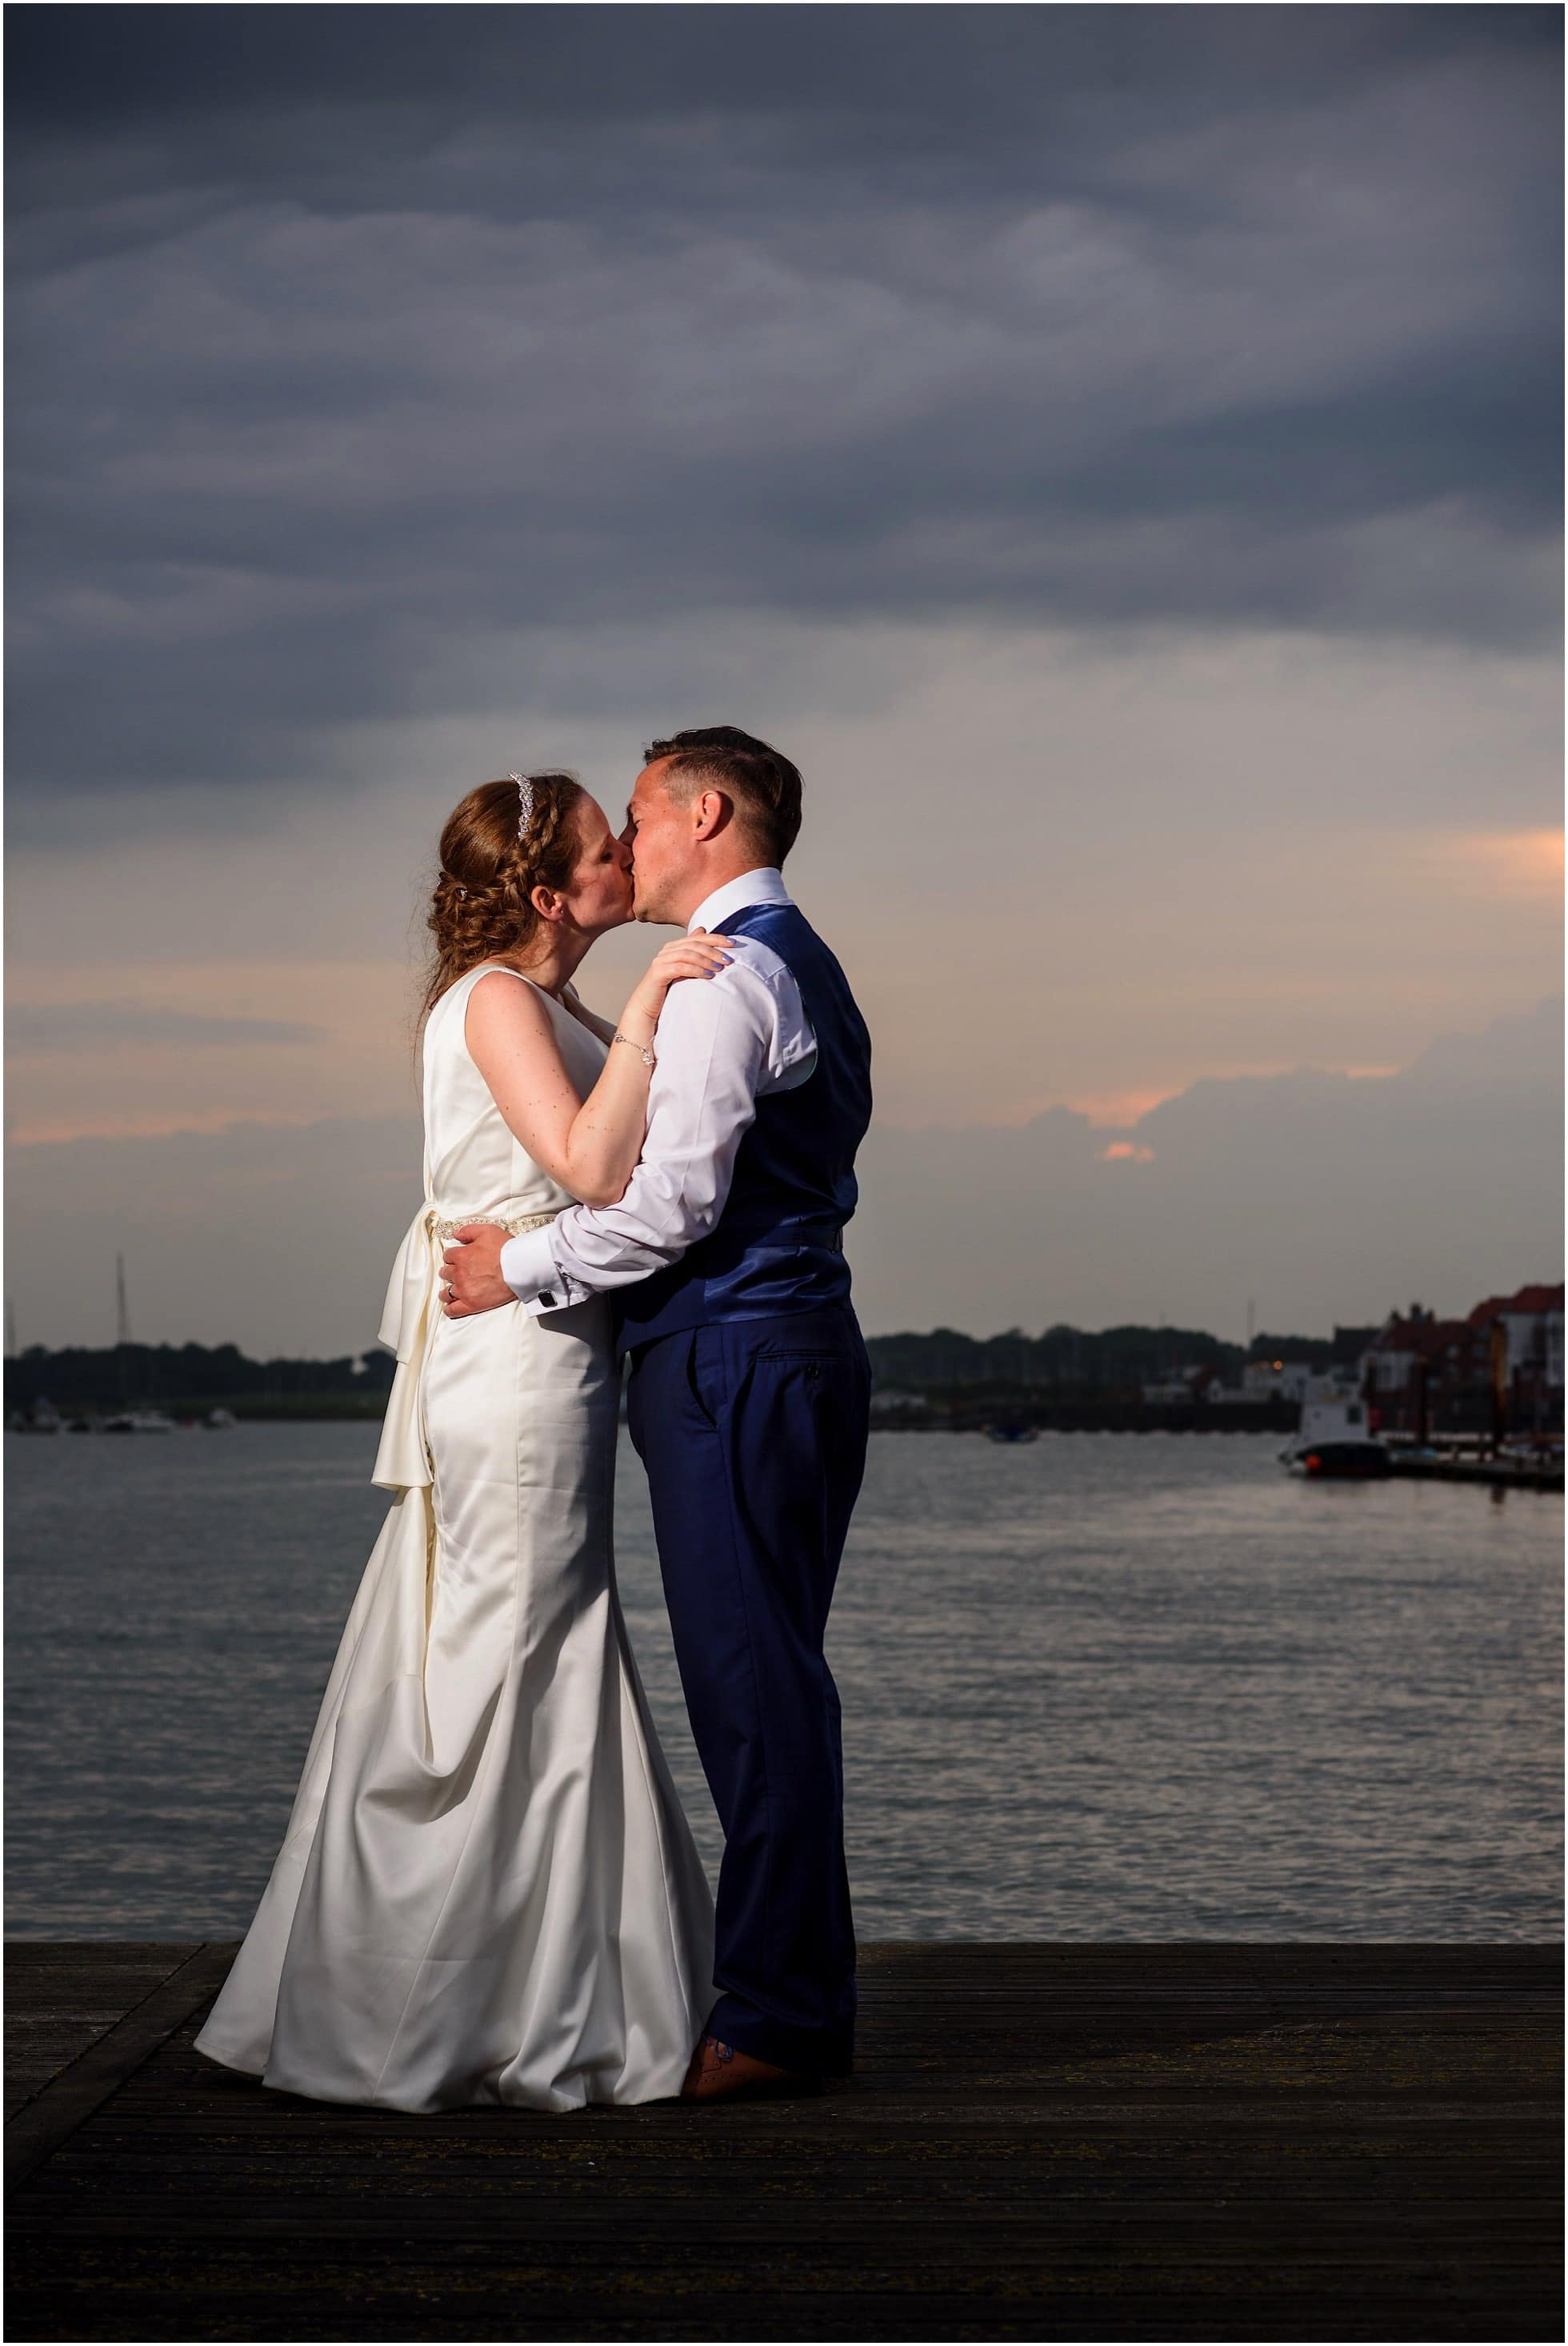 Groom and Bride at sunset at a Royal Corinthian Yacht Club Wedding